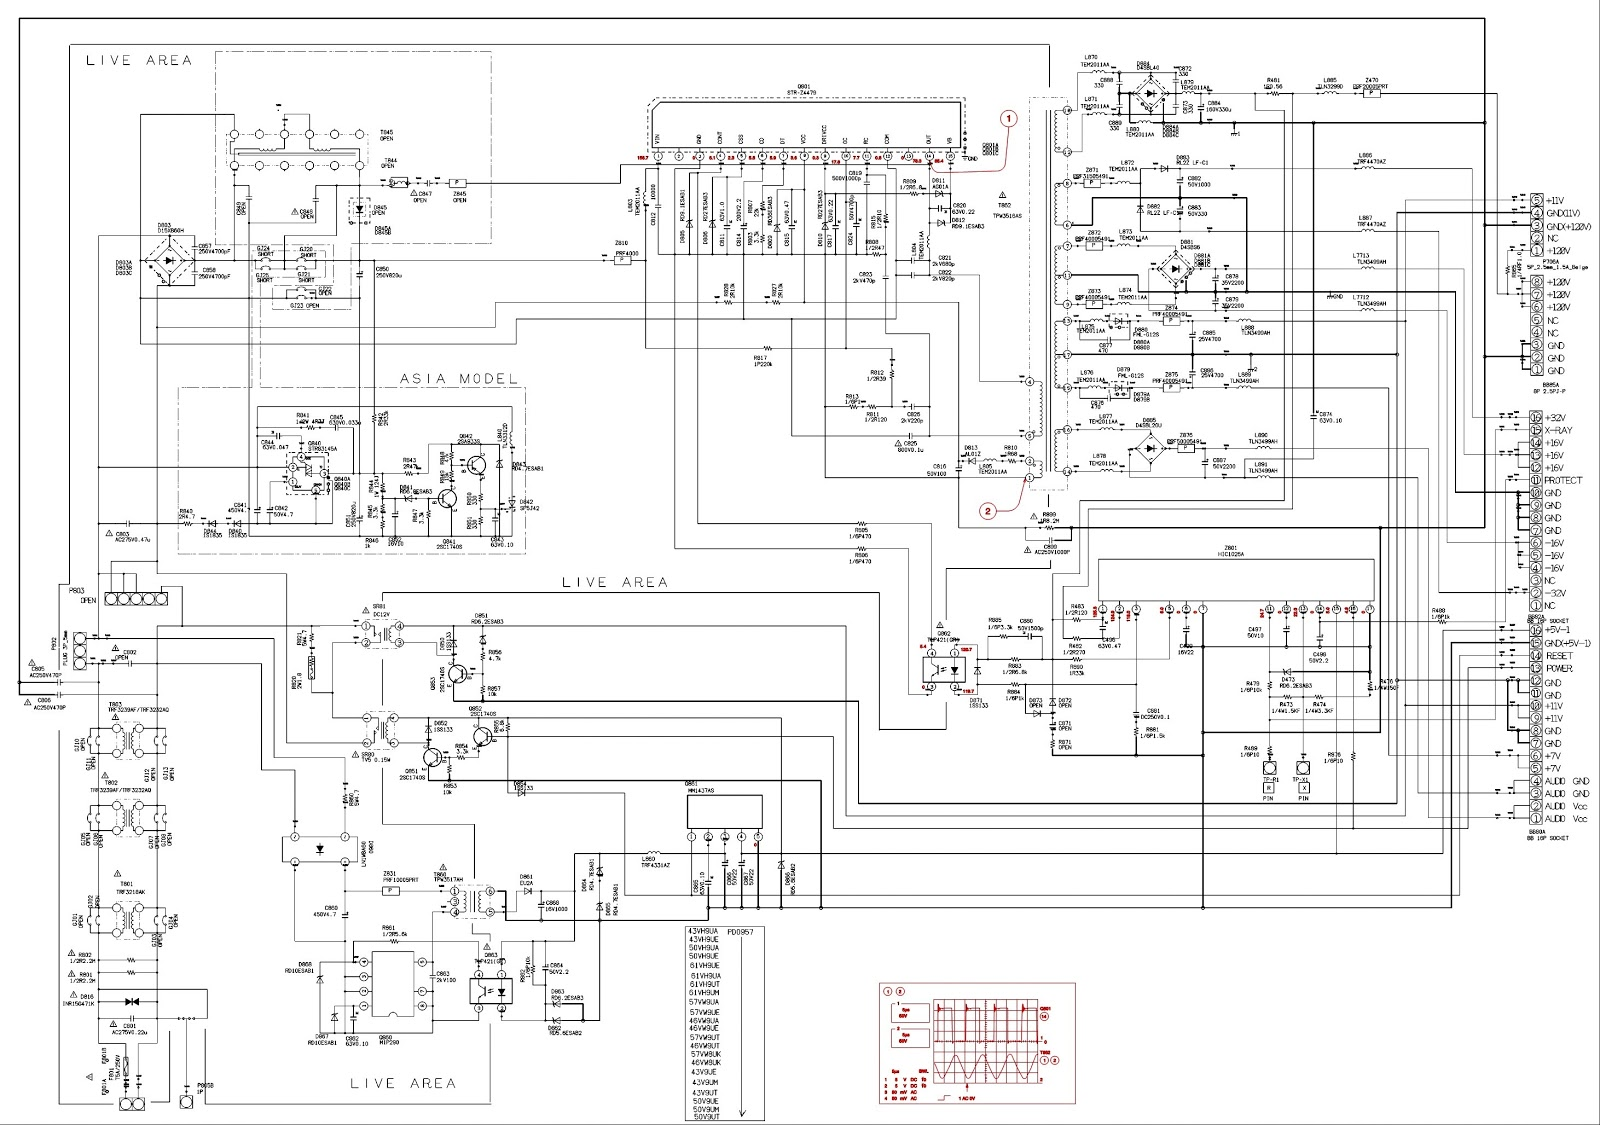 toshiba external wiring diagrams wiring diagram origin split ac system diagram toshiba drive wiring diagram [ 1600 x 1125 Pixel ]